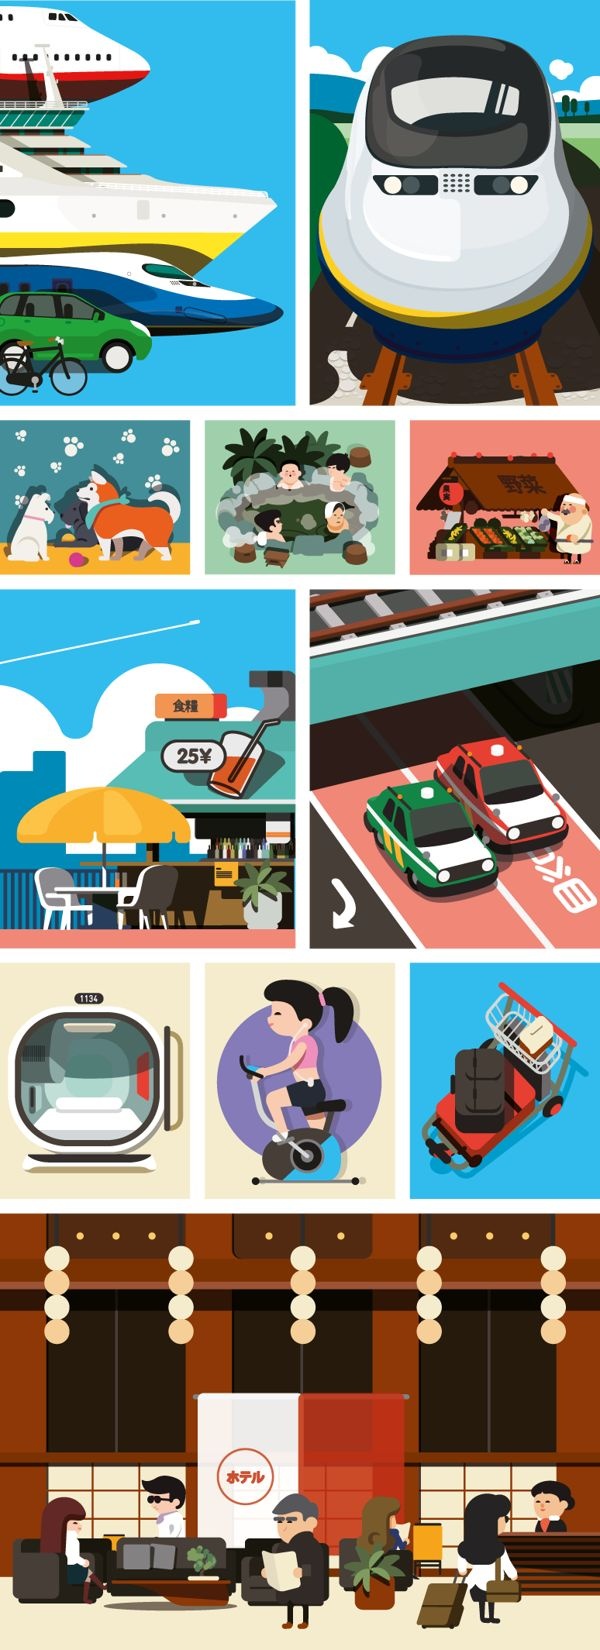 Monocle Train Station by Hey , via Behance